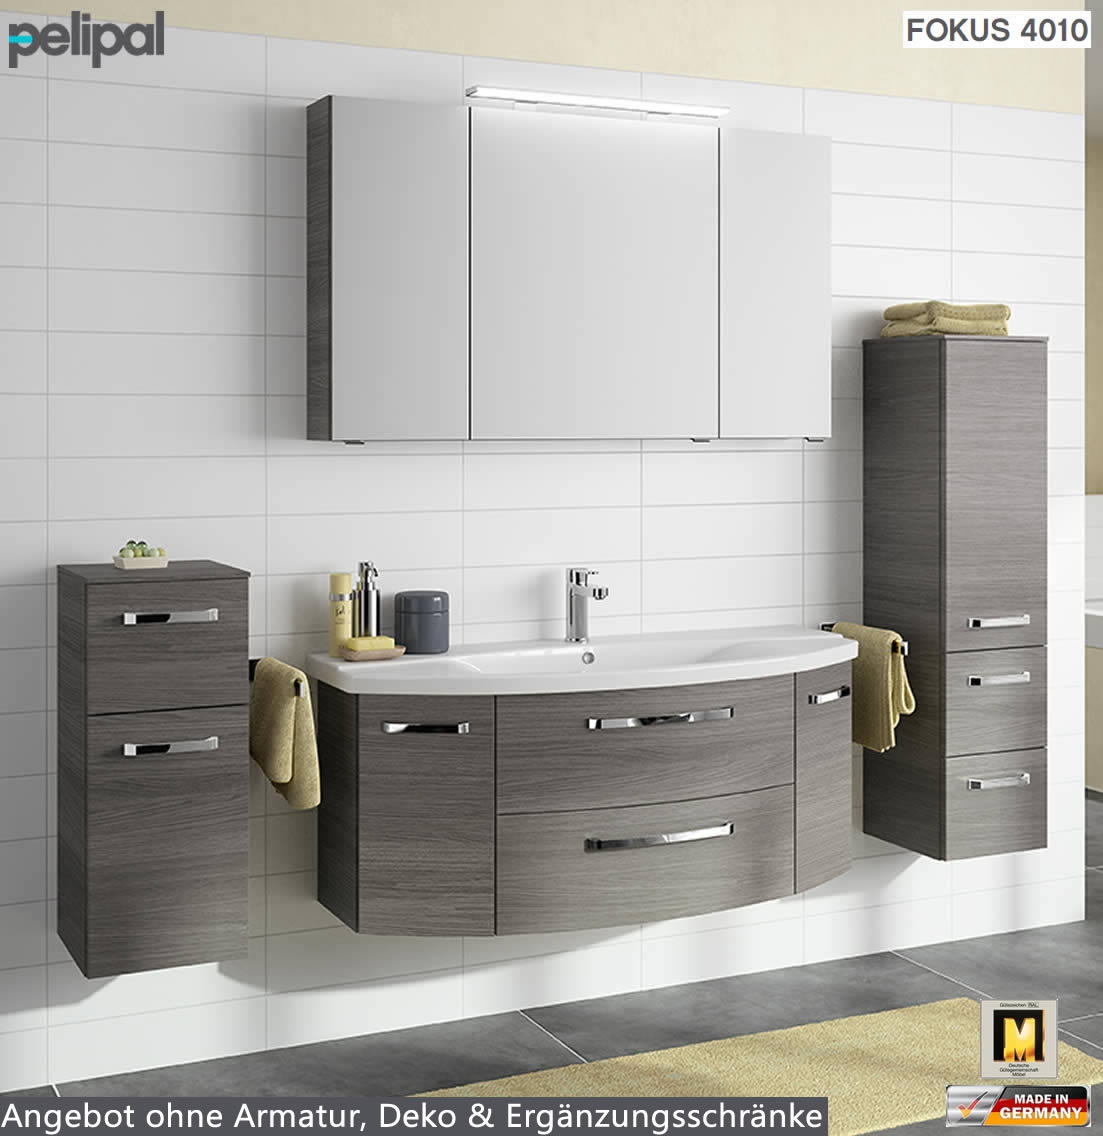 pelipal fokus 4010 badm bel set 3tlg 120 cm mit keramik waschtisch v1 2 impuls home. Black Bedroom Furniture Sets. Home Design Ideas